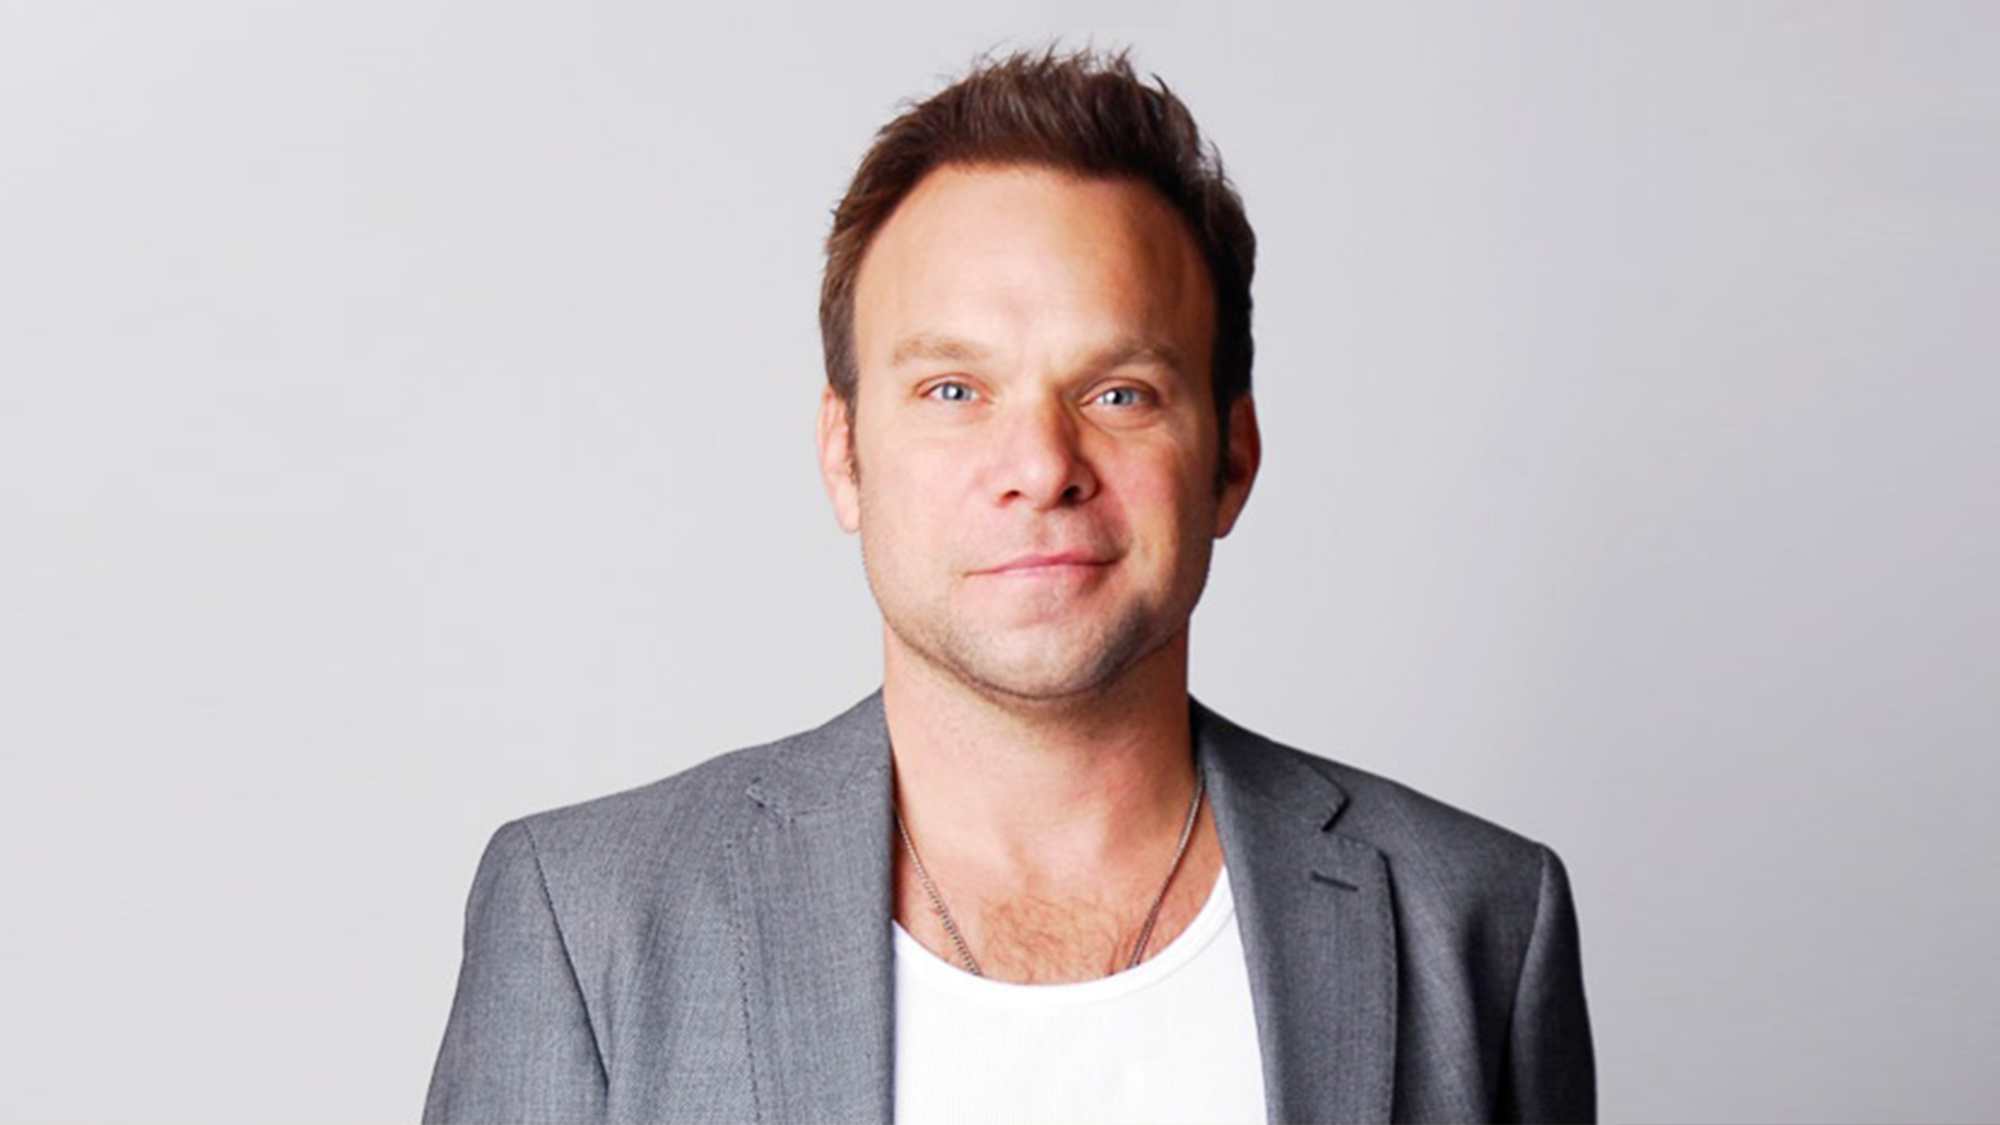 norbert leo butz official website